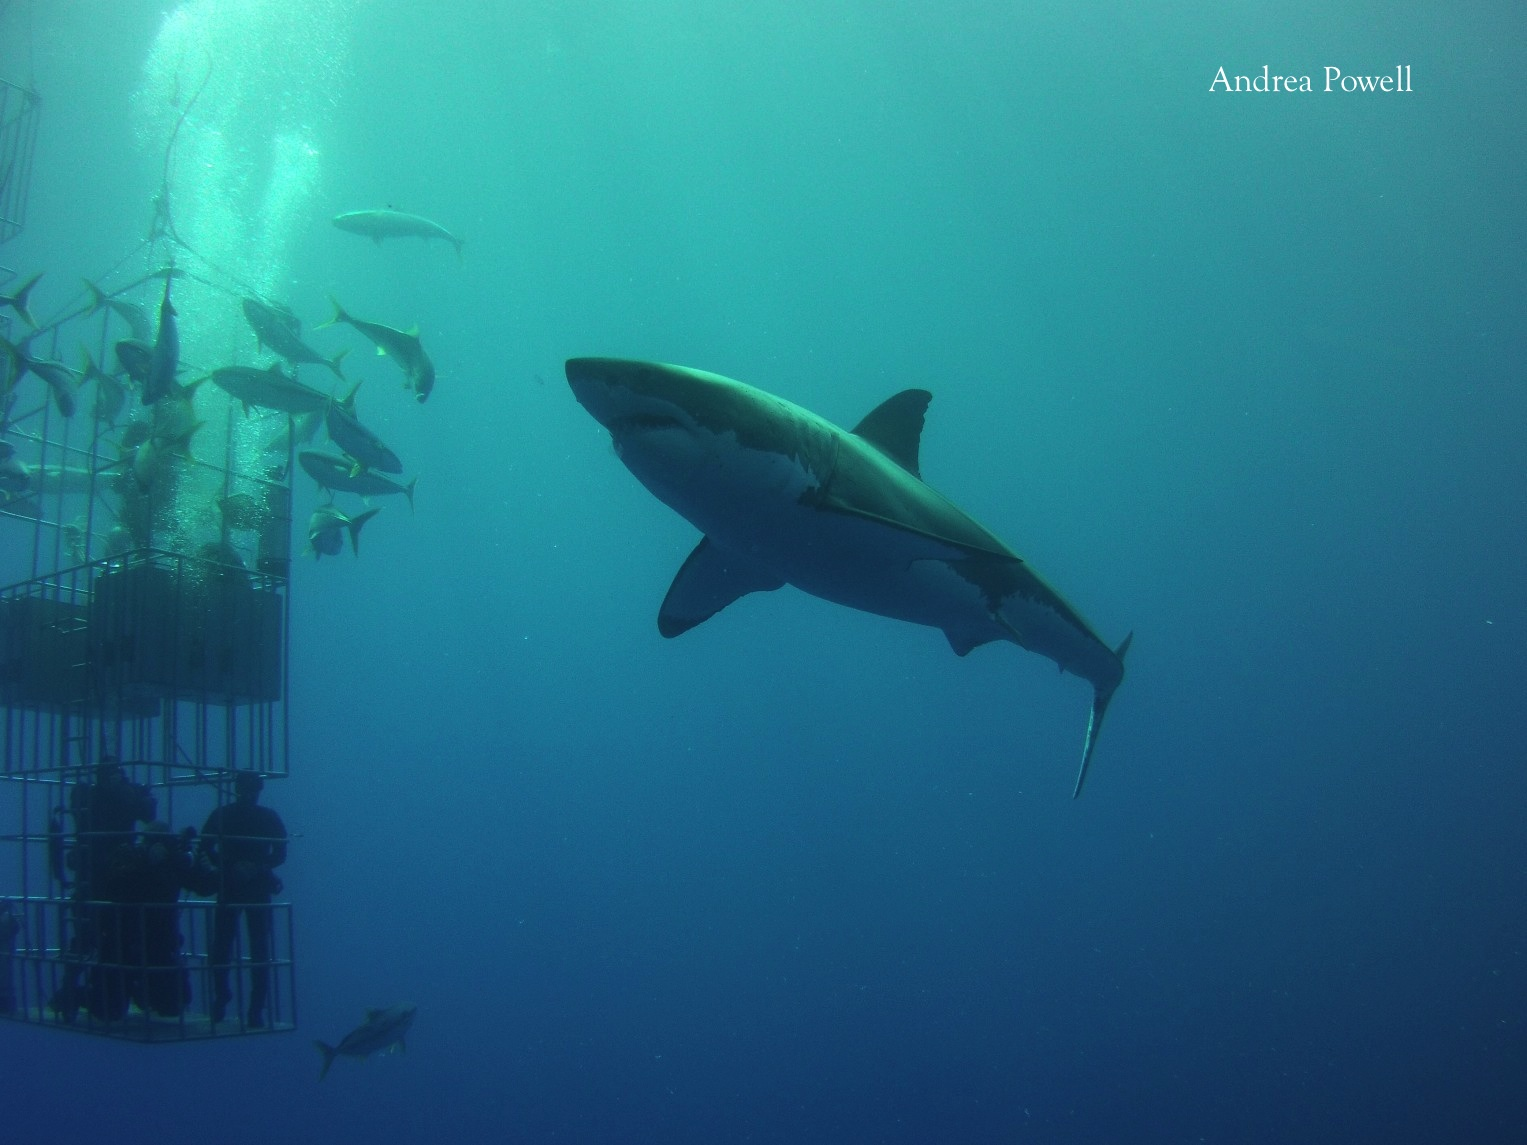 looking up at a great white shark